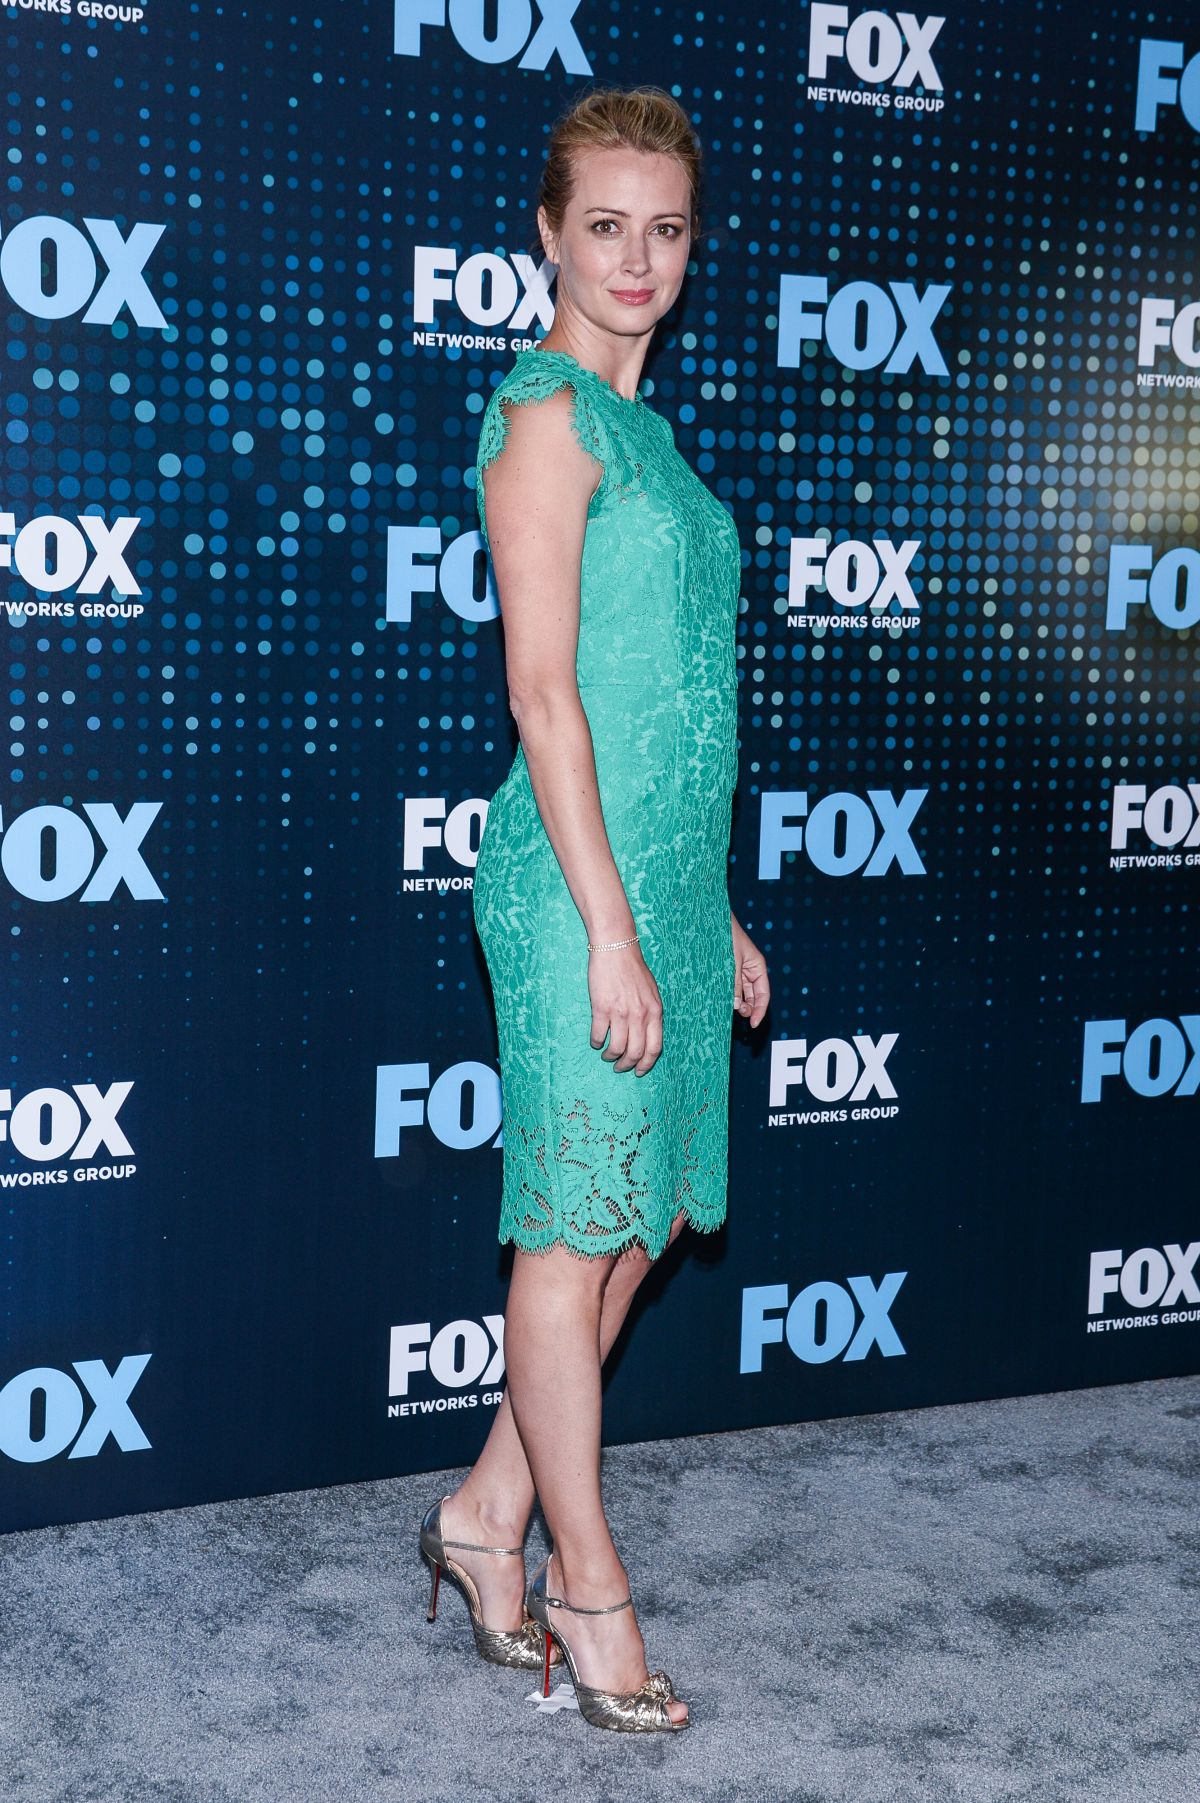 AMY ACKER at Fox Upfront Presentation in New York 05/15/2017